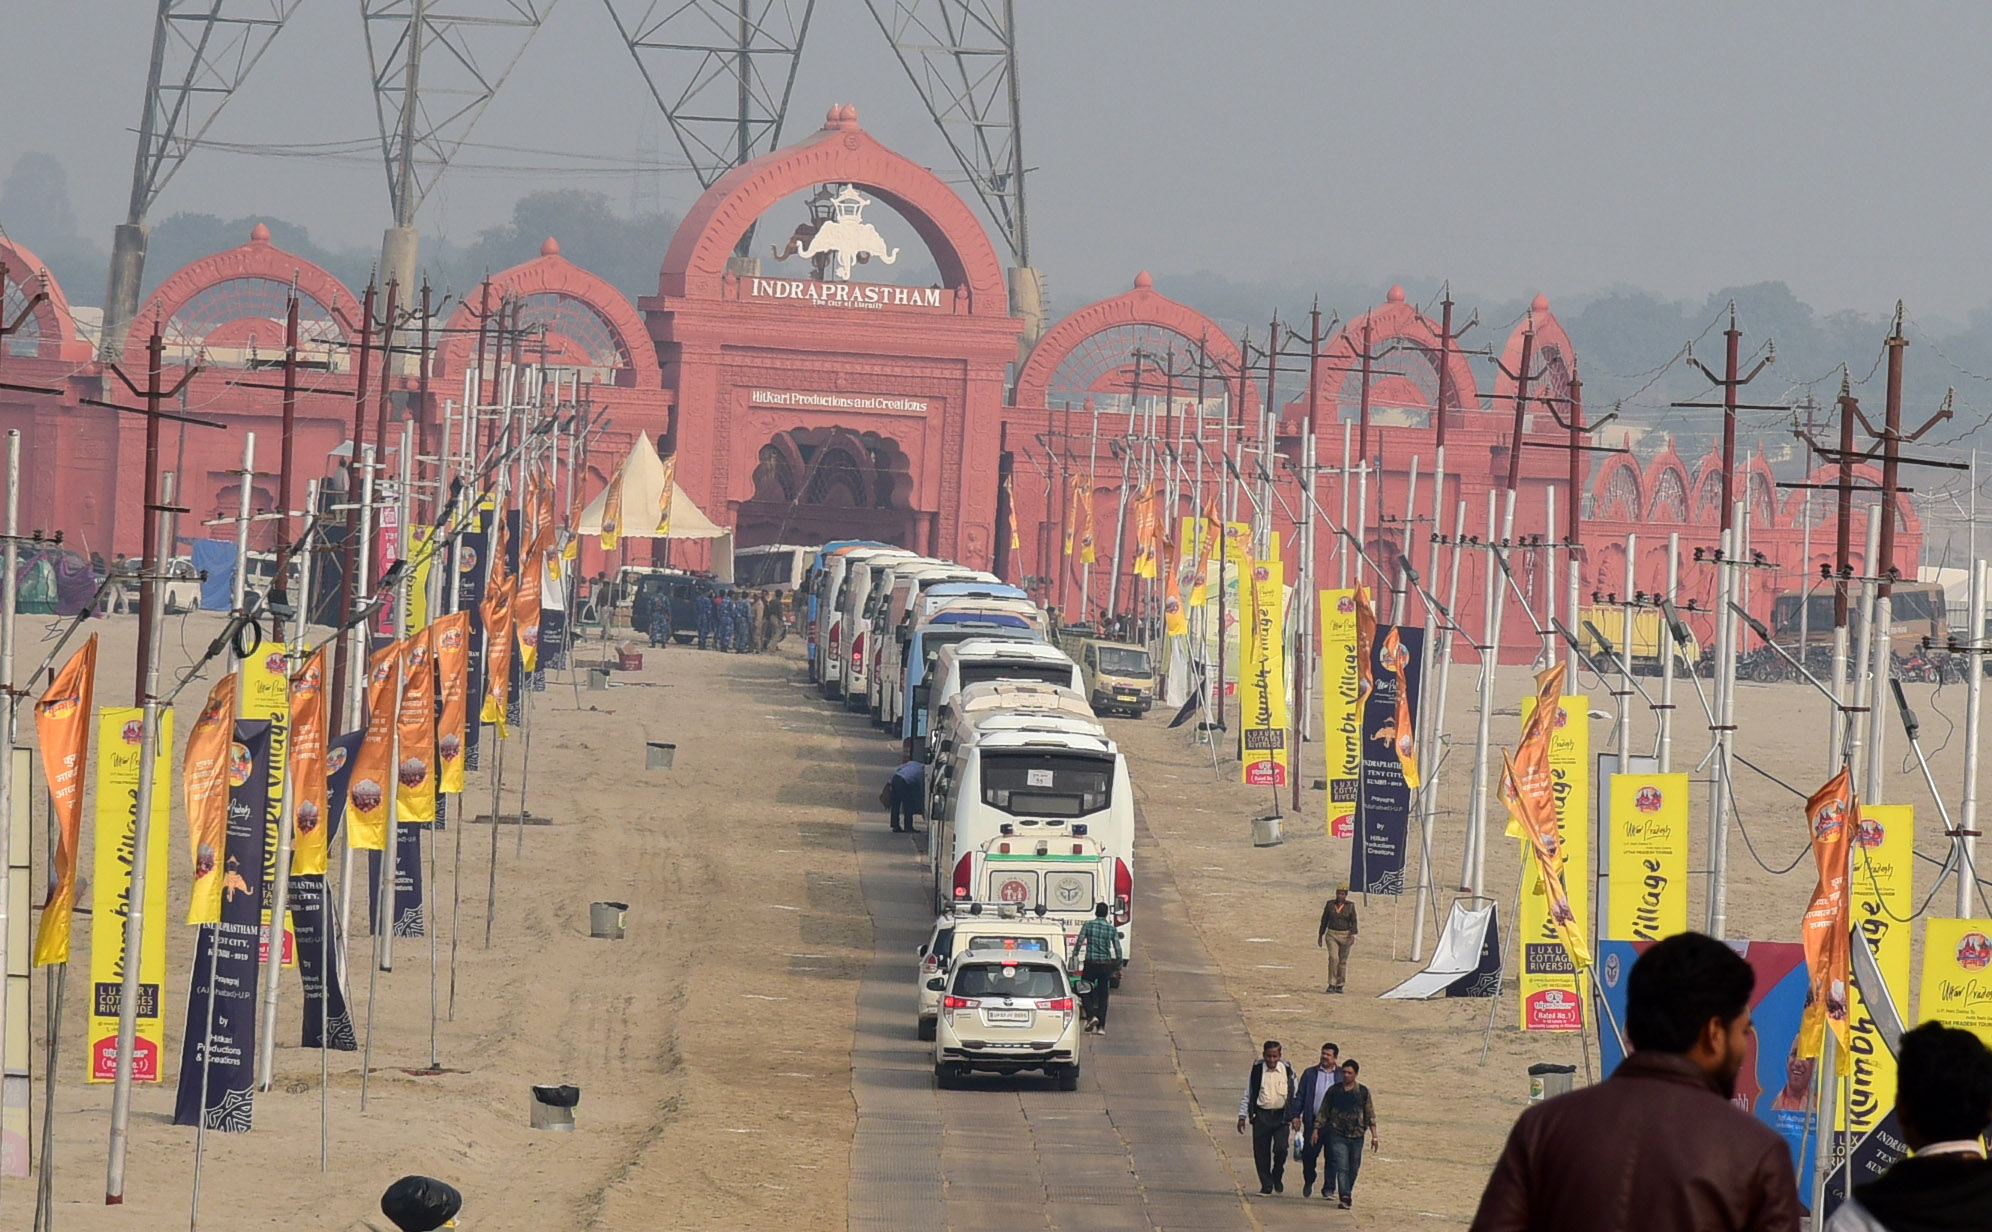 Convoy of vehicles carrying PBD delegates entering Indraprastham in the Kumbh Mela area in Prayagraj. Photo: Connected to India